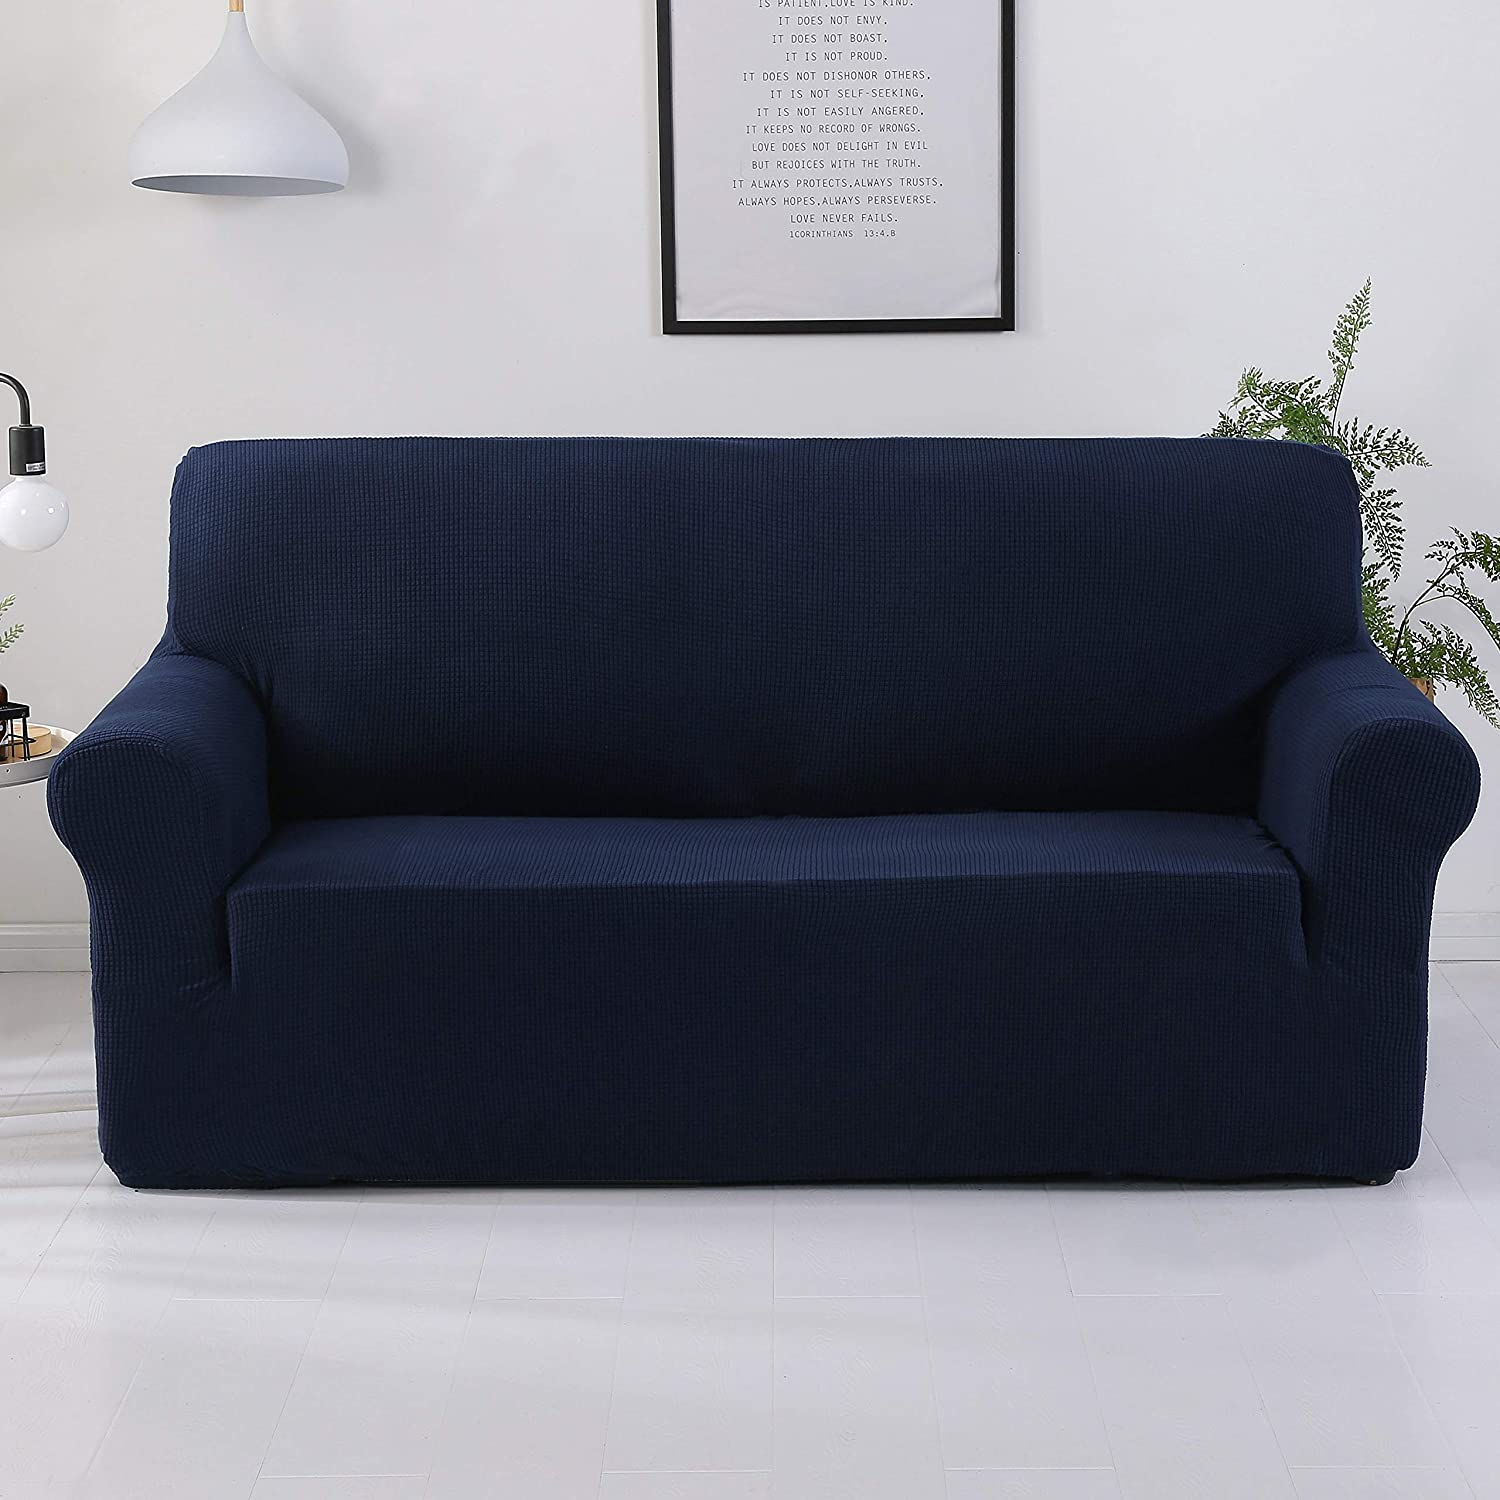 FORCHEER Couch Cover for Leather Couch 3 Seater Sofa Slipcovers Living Room  Furniture Protector for Pets 1PC(Sofa,Navy/Dark Blue)